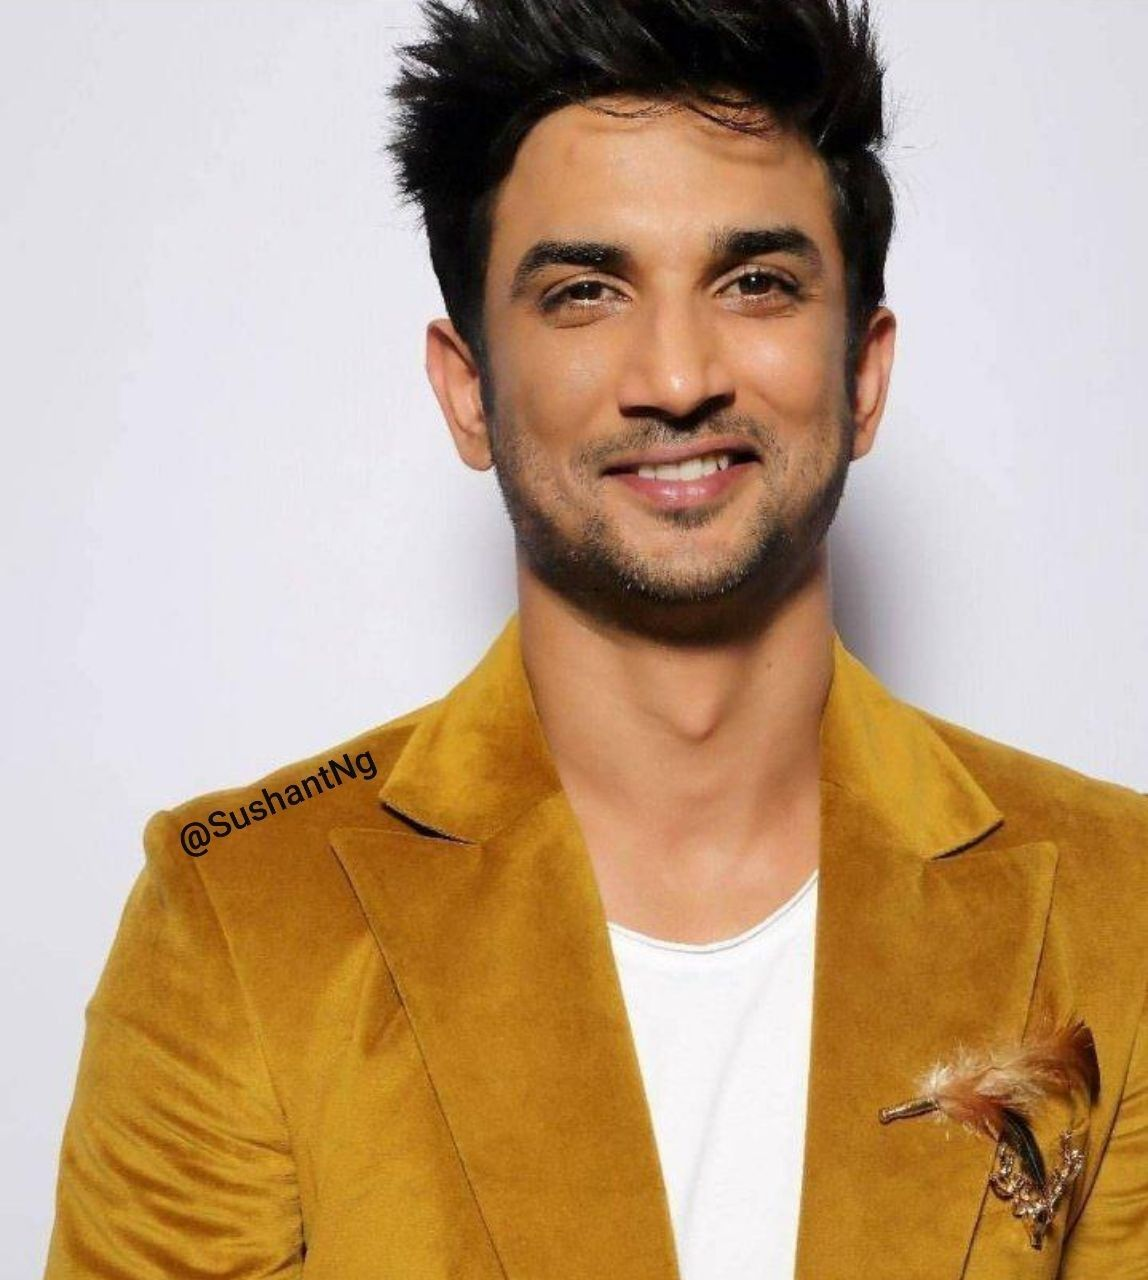 Pin By Sabeena Paracha On Sushant Singh Rajput Sir In 2020 Cute Actors Sushant Singh Actors